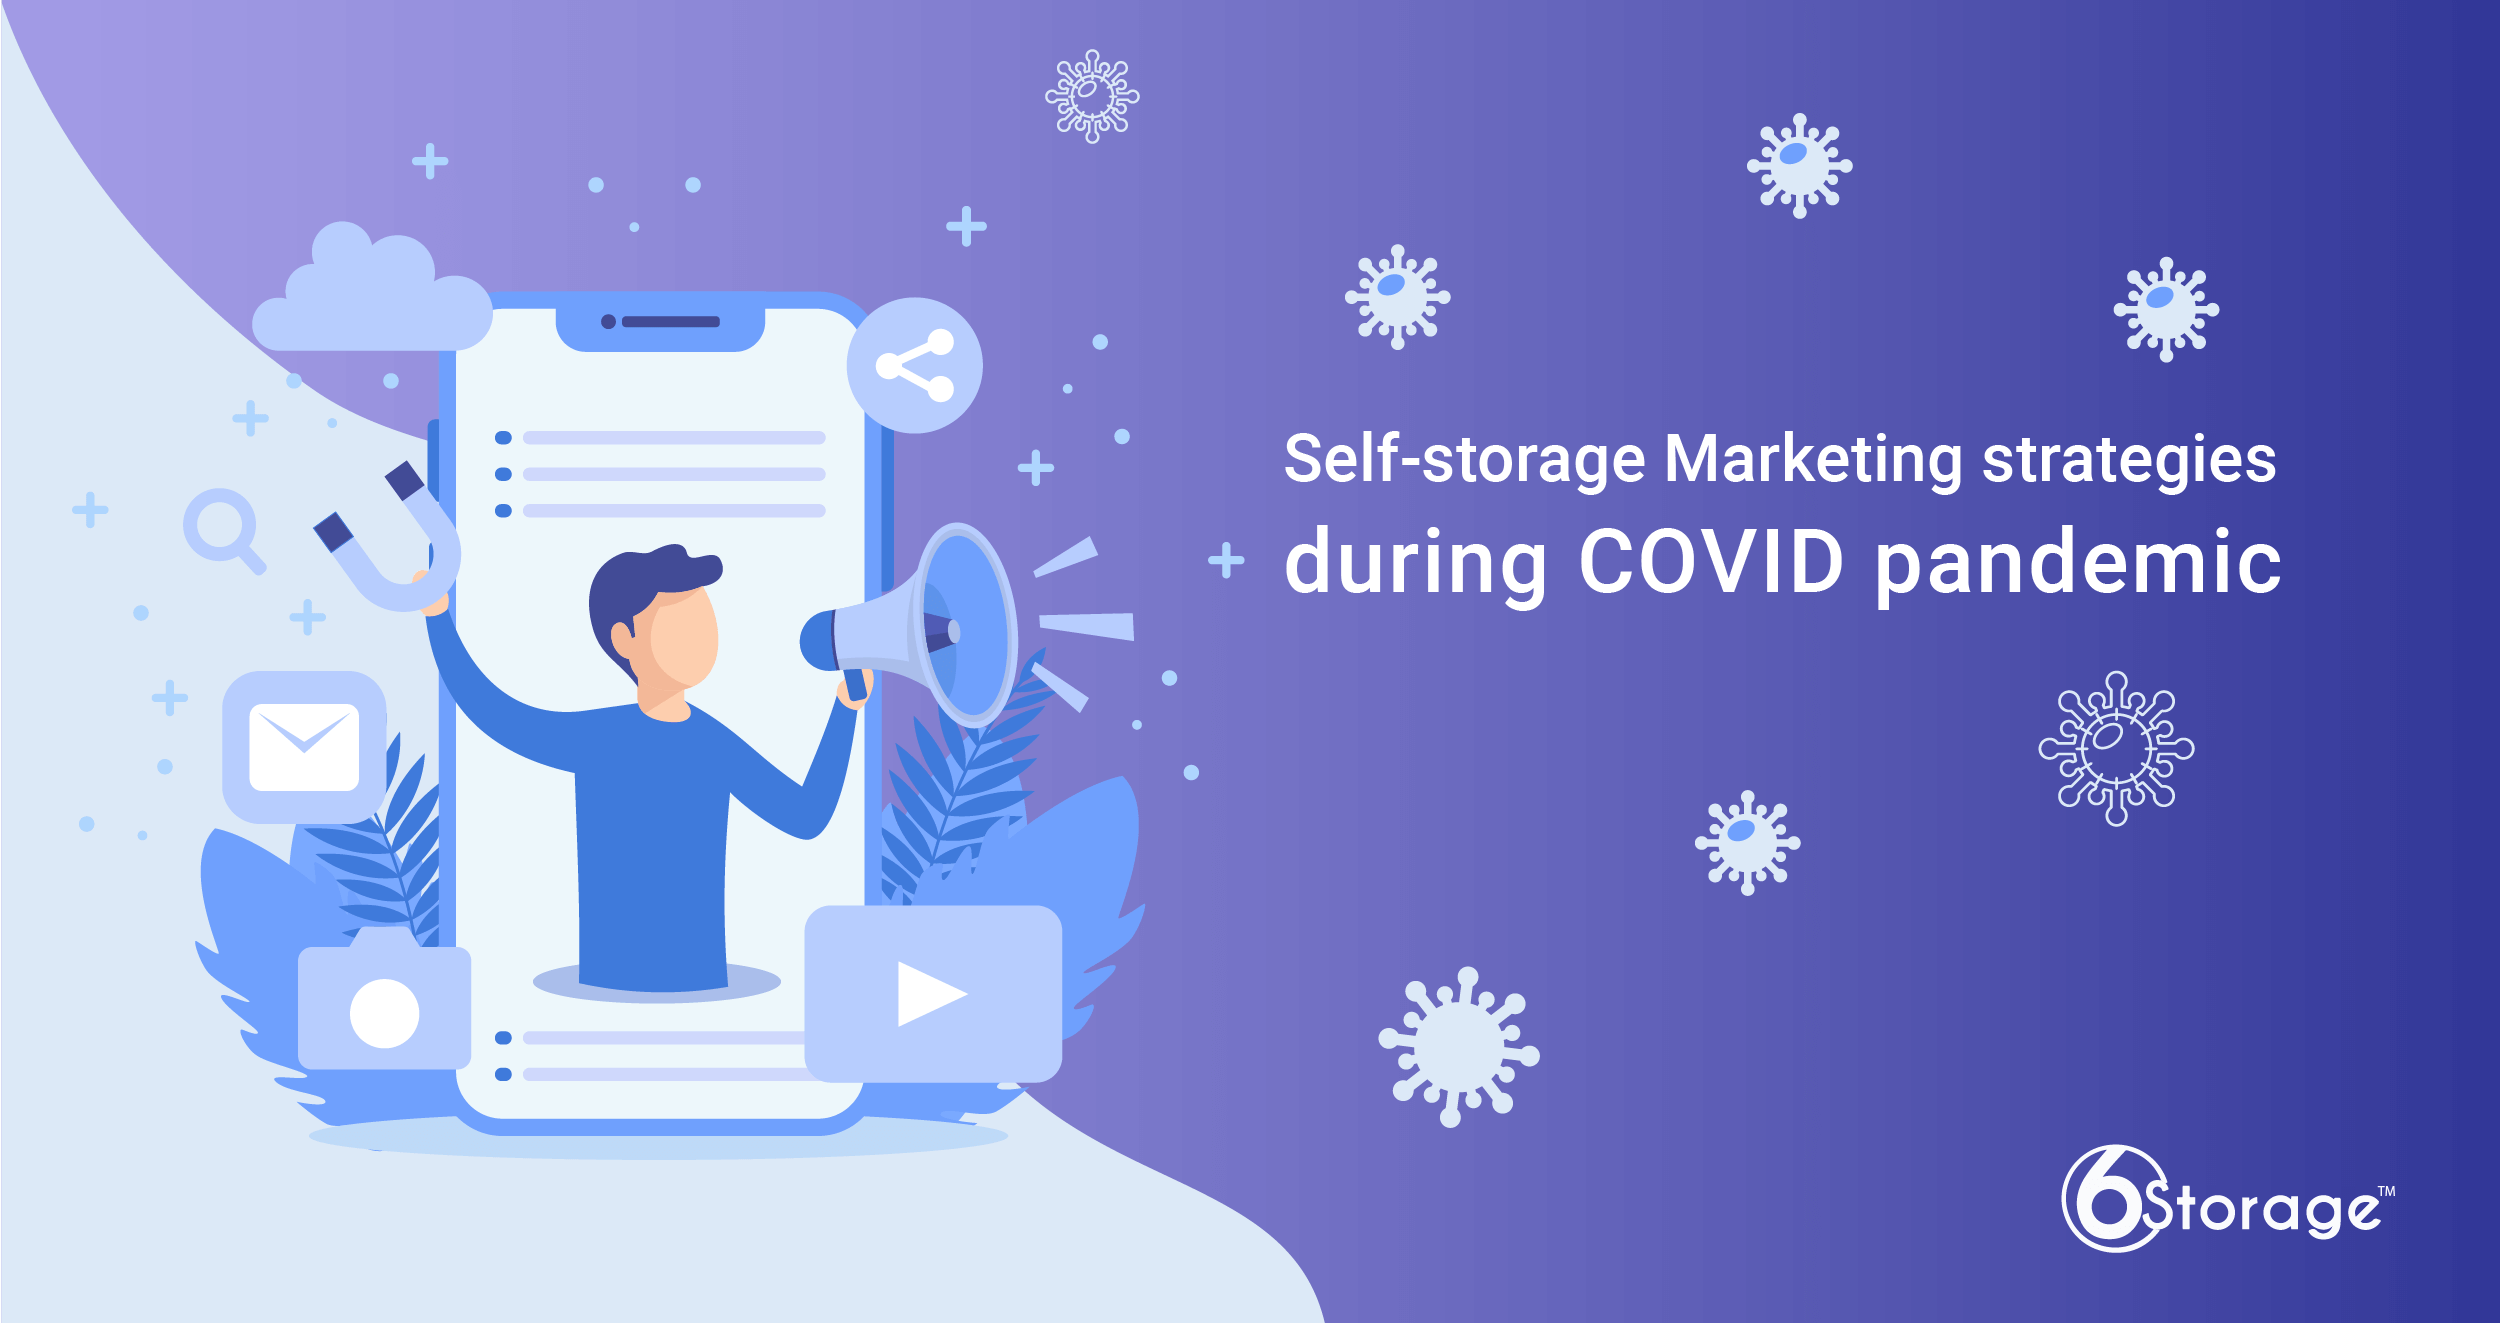 Self-storage Marketing strategies during COVID pandemic